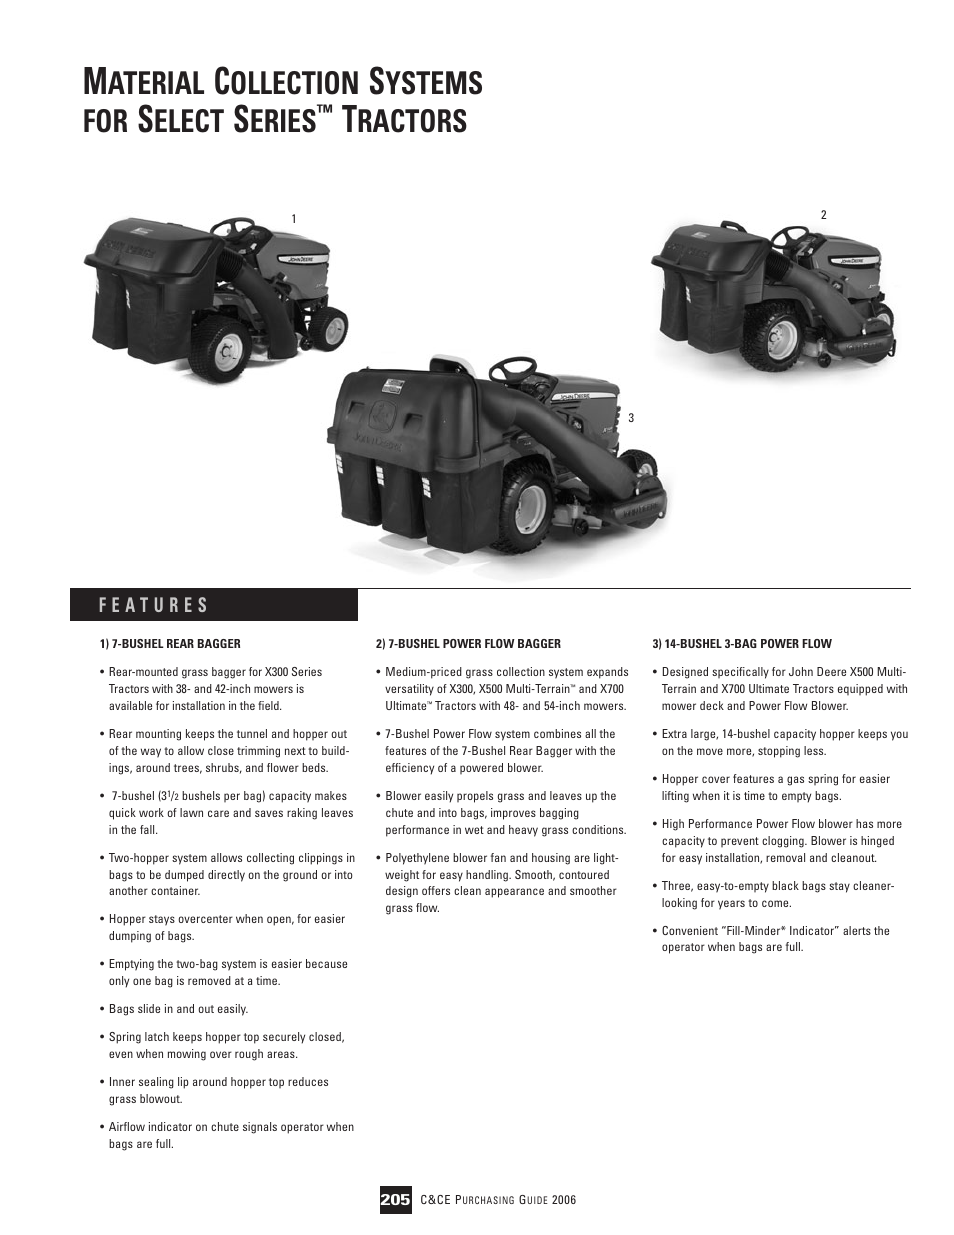 John Deere Ultimate X700 User Manual | 2 pages | Also for: Select